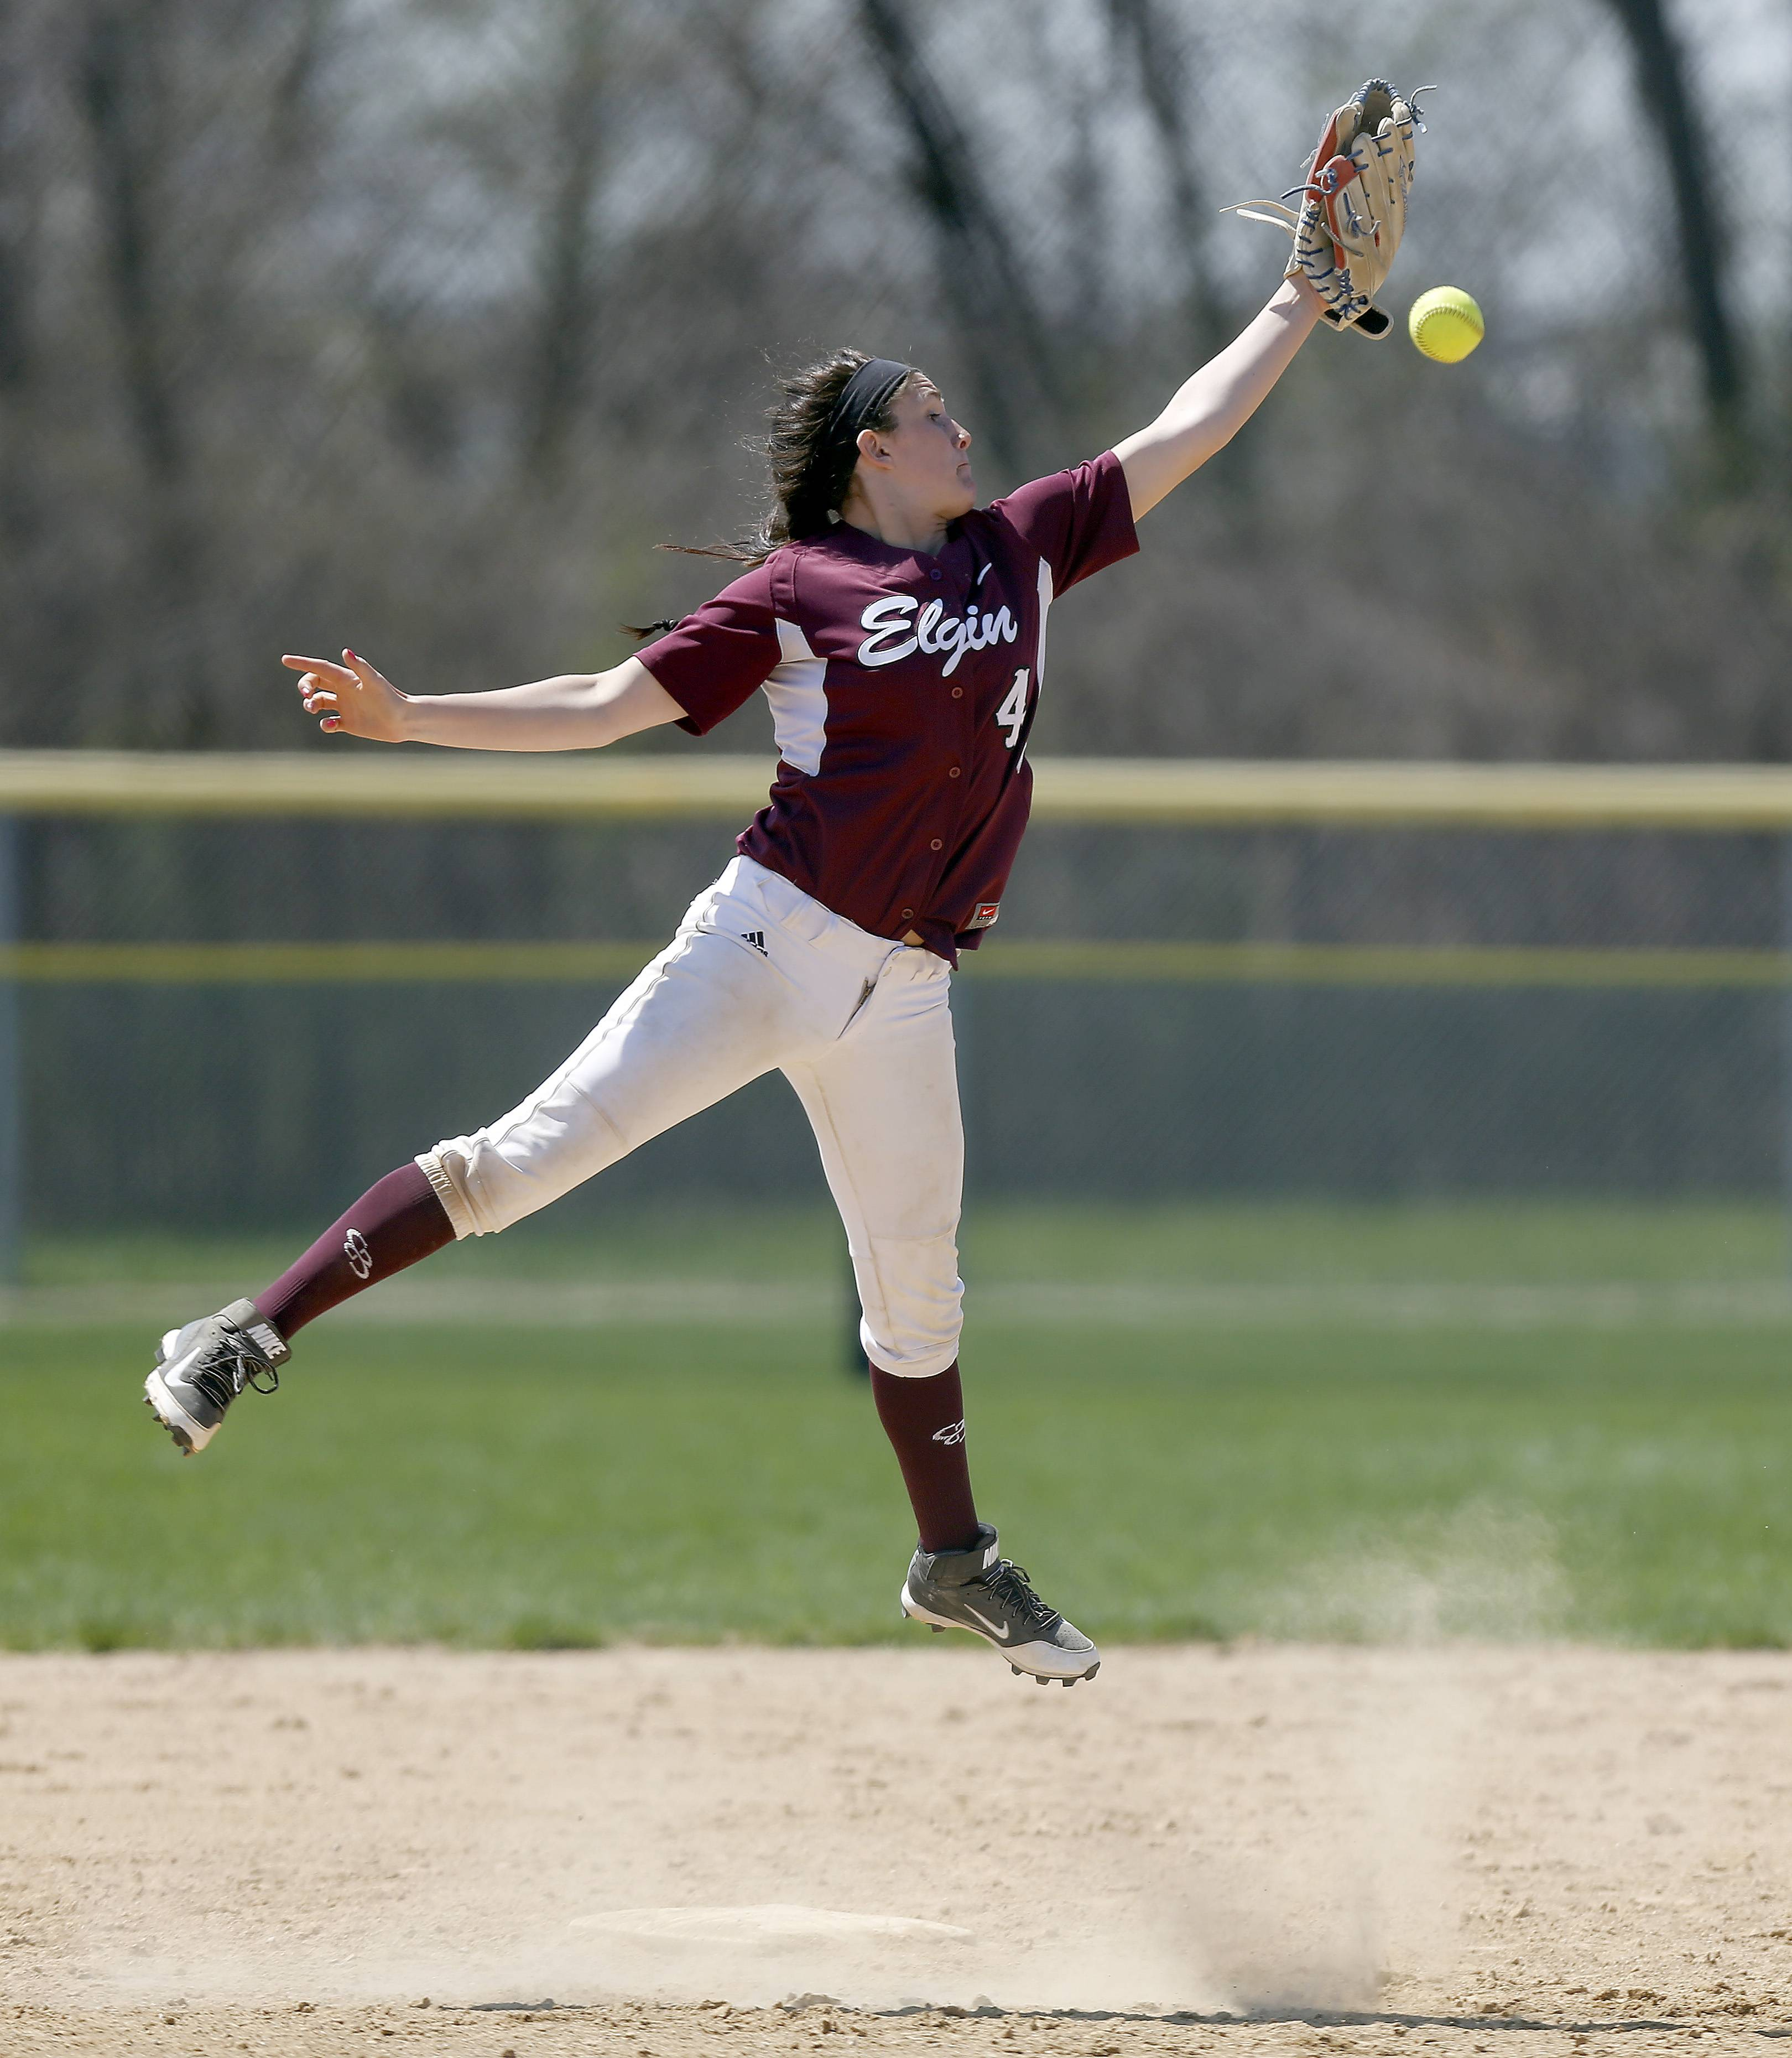 Elgin's Jennah Perryman (4) can't reach a throw to second base against Mt. Assisi during the Larkin Slugfest softball tournament Saturday at the Elgin Sports Complex.